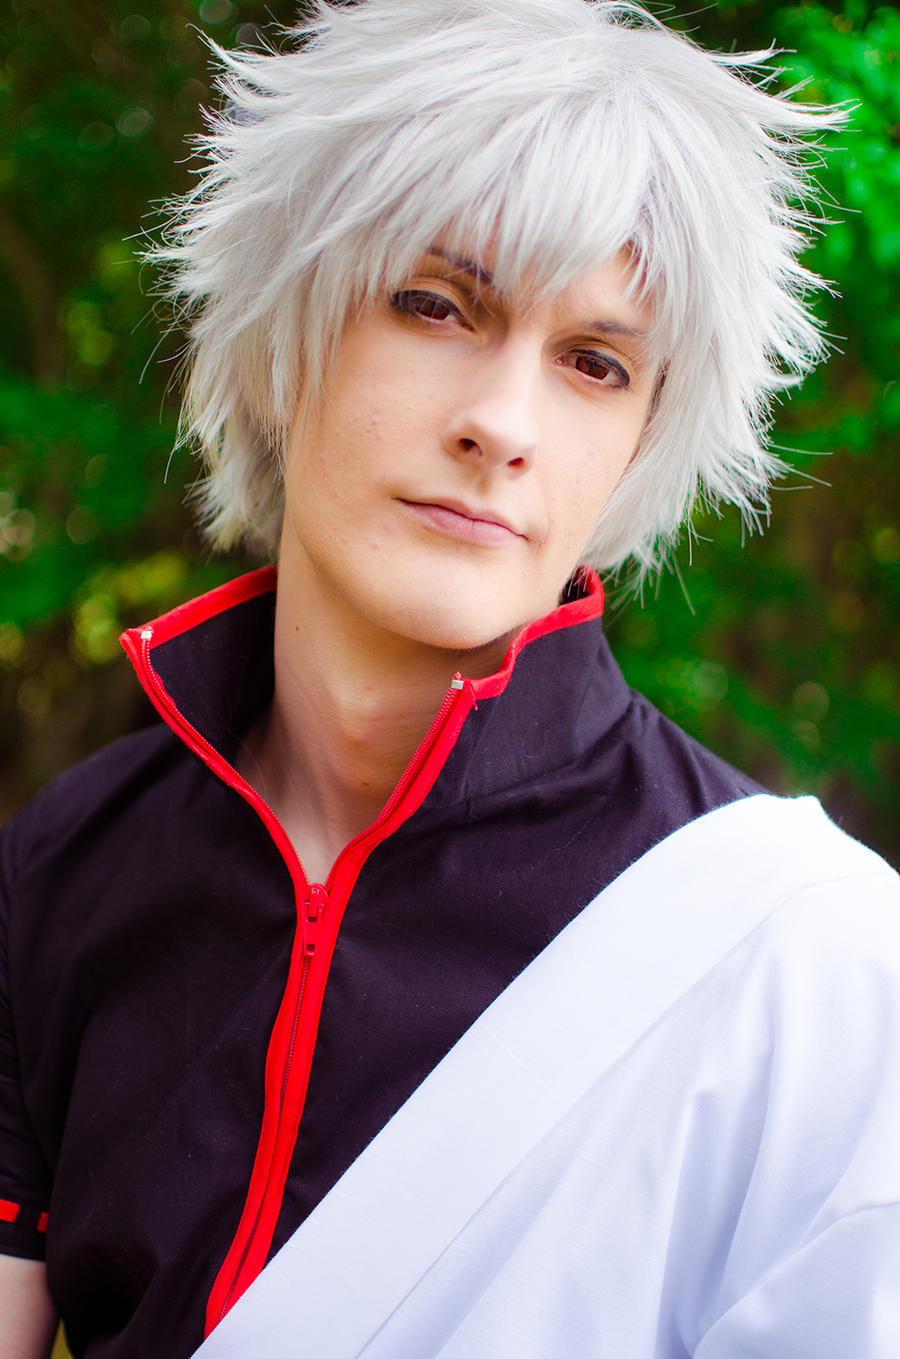 gintoki cosplay - photo #15